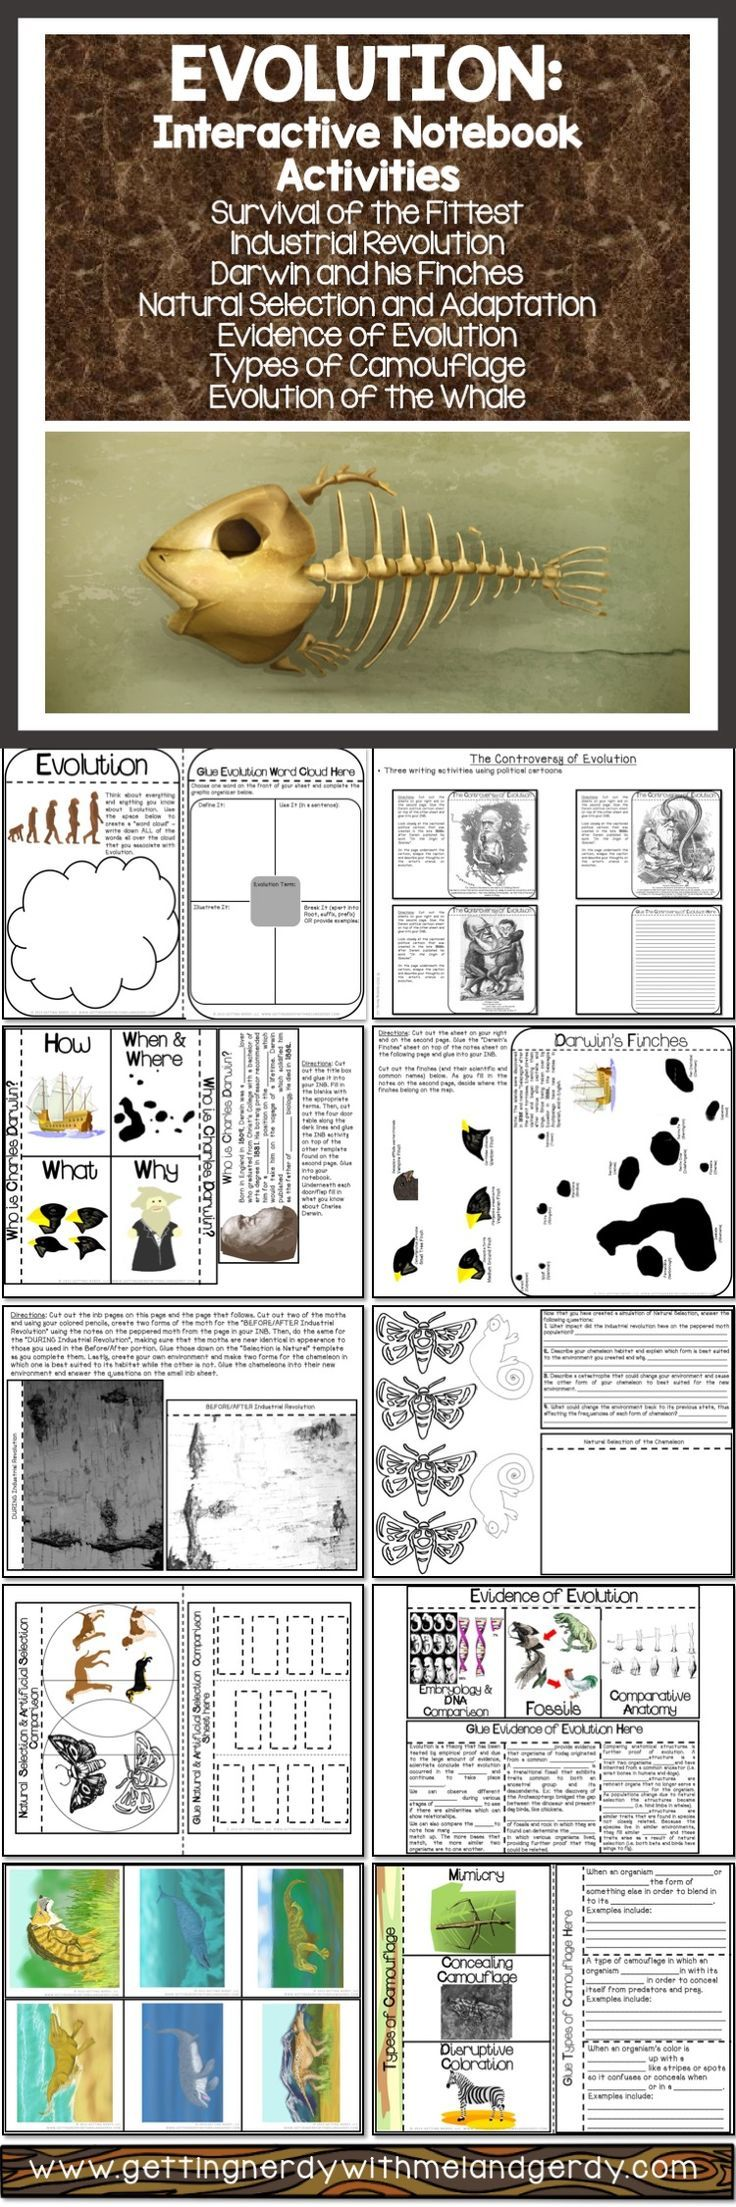 Evolution interactive notebook activities - natural selection, peppered moth, whale evolution, evidence for evolution, types of camouflage, Darwin's studies, his travels, Galapagos finches and more!